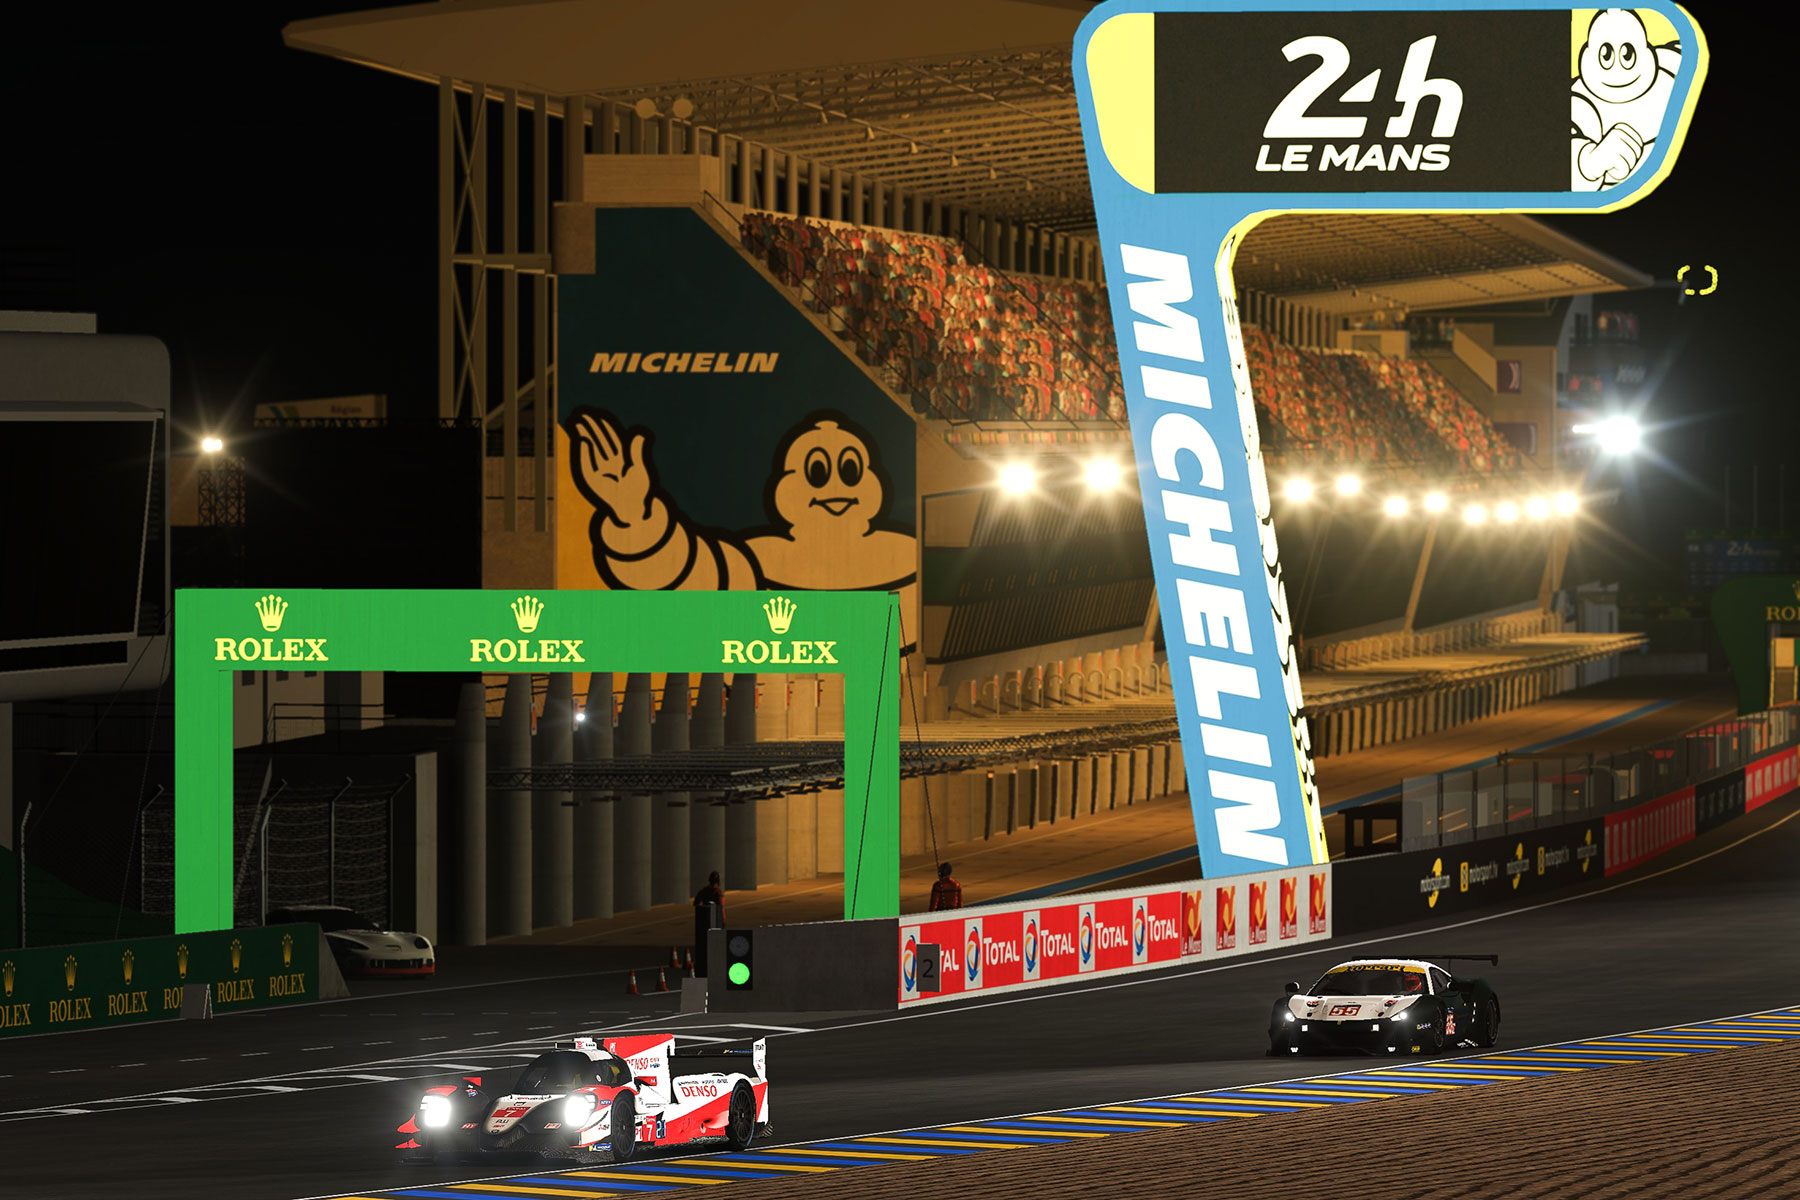 Le Mans 24 Hours Virtual - Live and Racecard